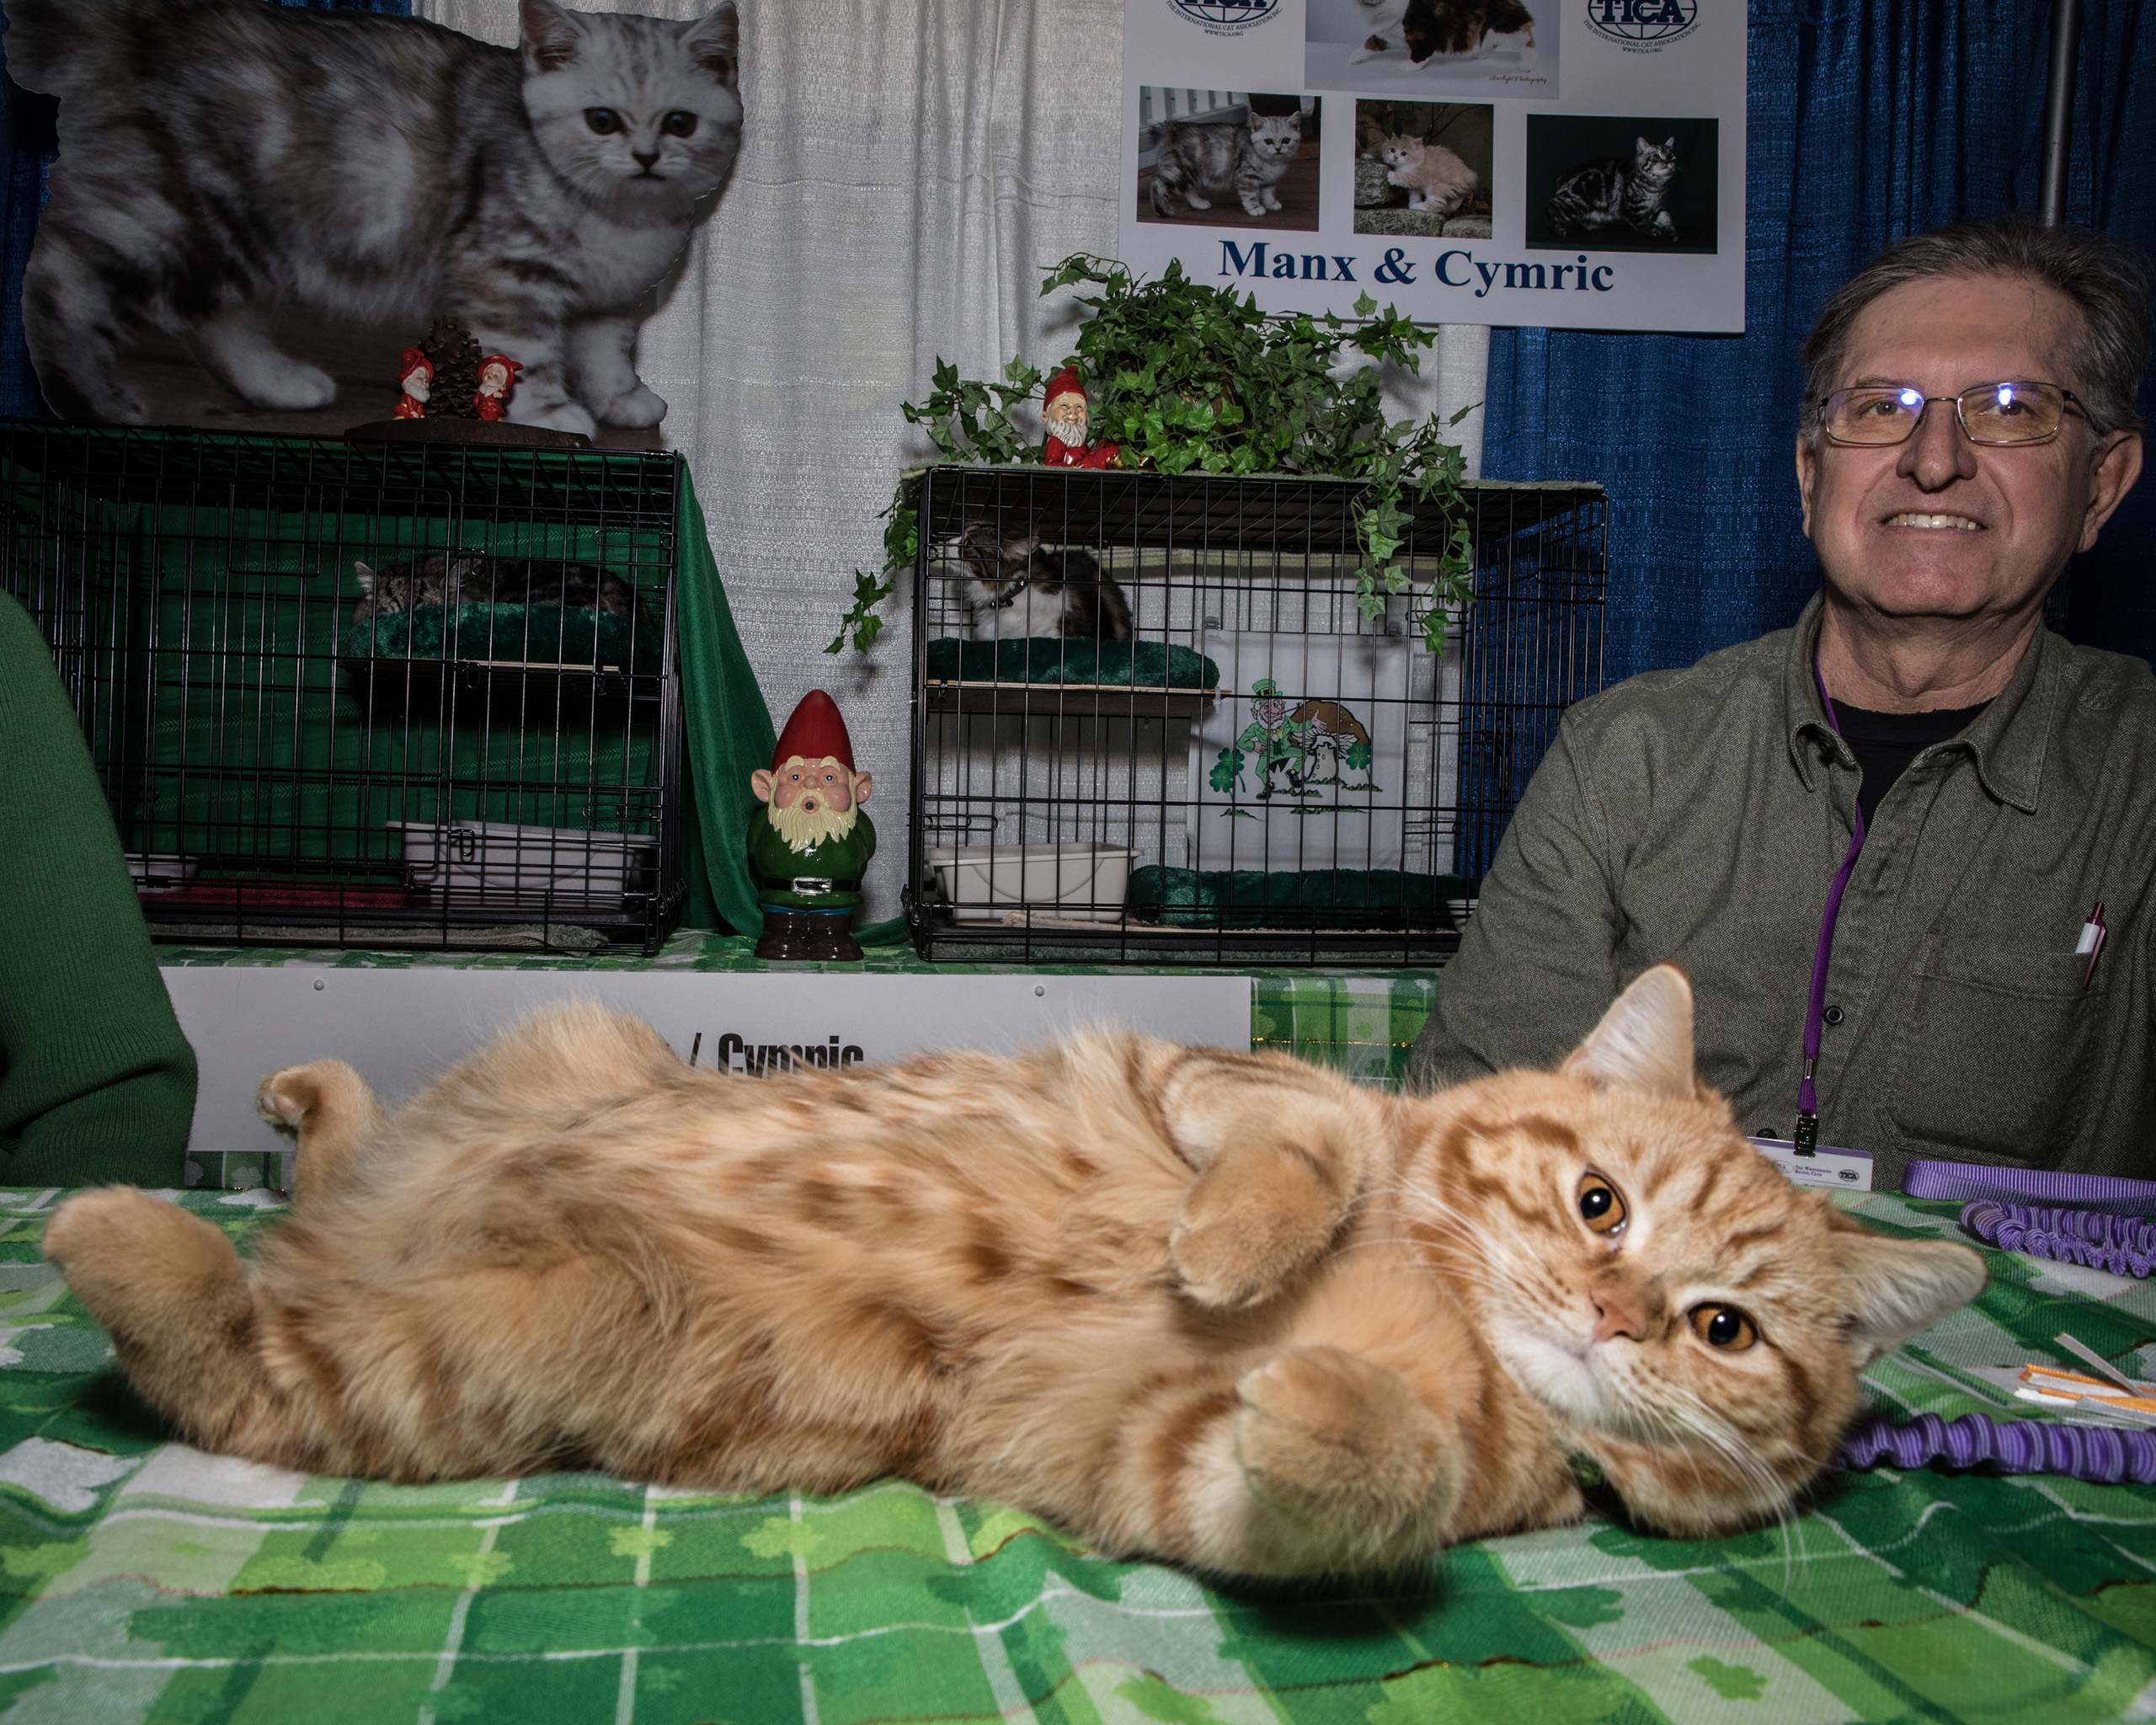 A Manx rolls over for the camera at the American Kennel Club's Meet the Breeds event in New York City. For the first time, cats shared space with dogs at Piers 92 and 94 on Feb. 11, 2017.